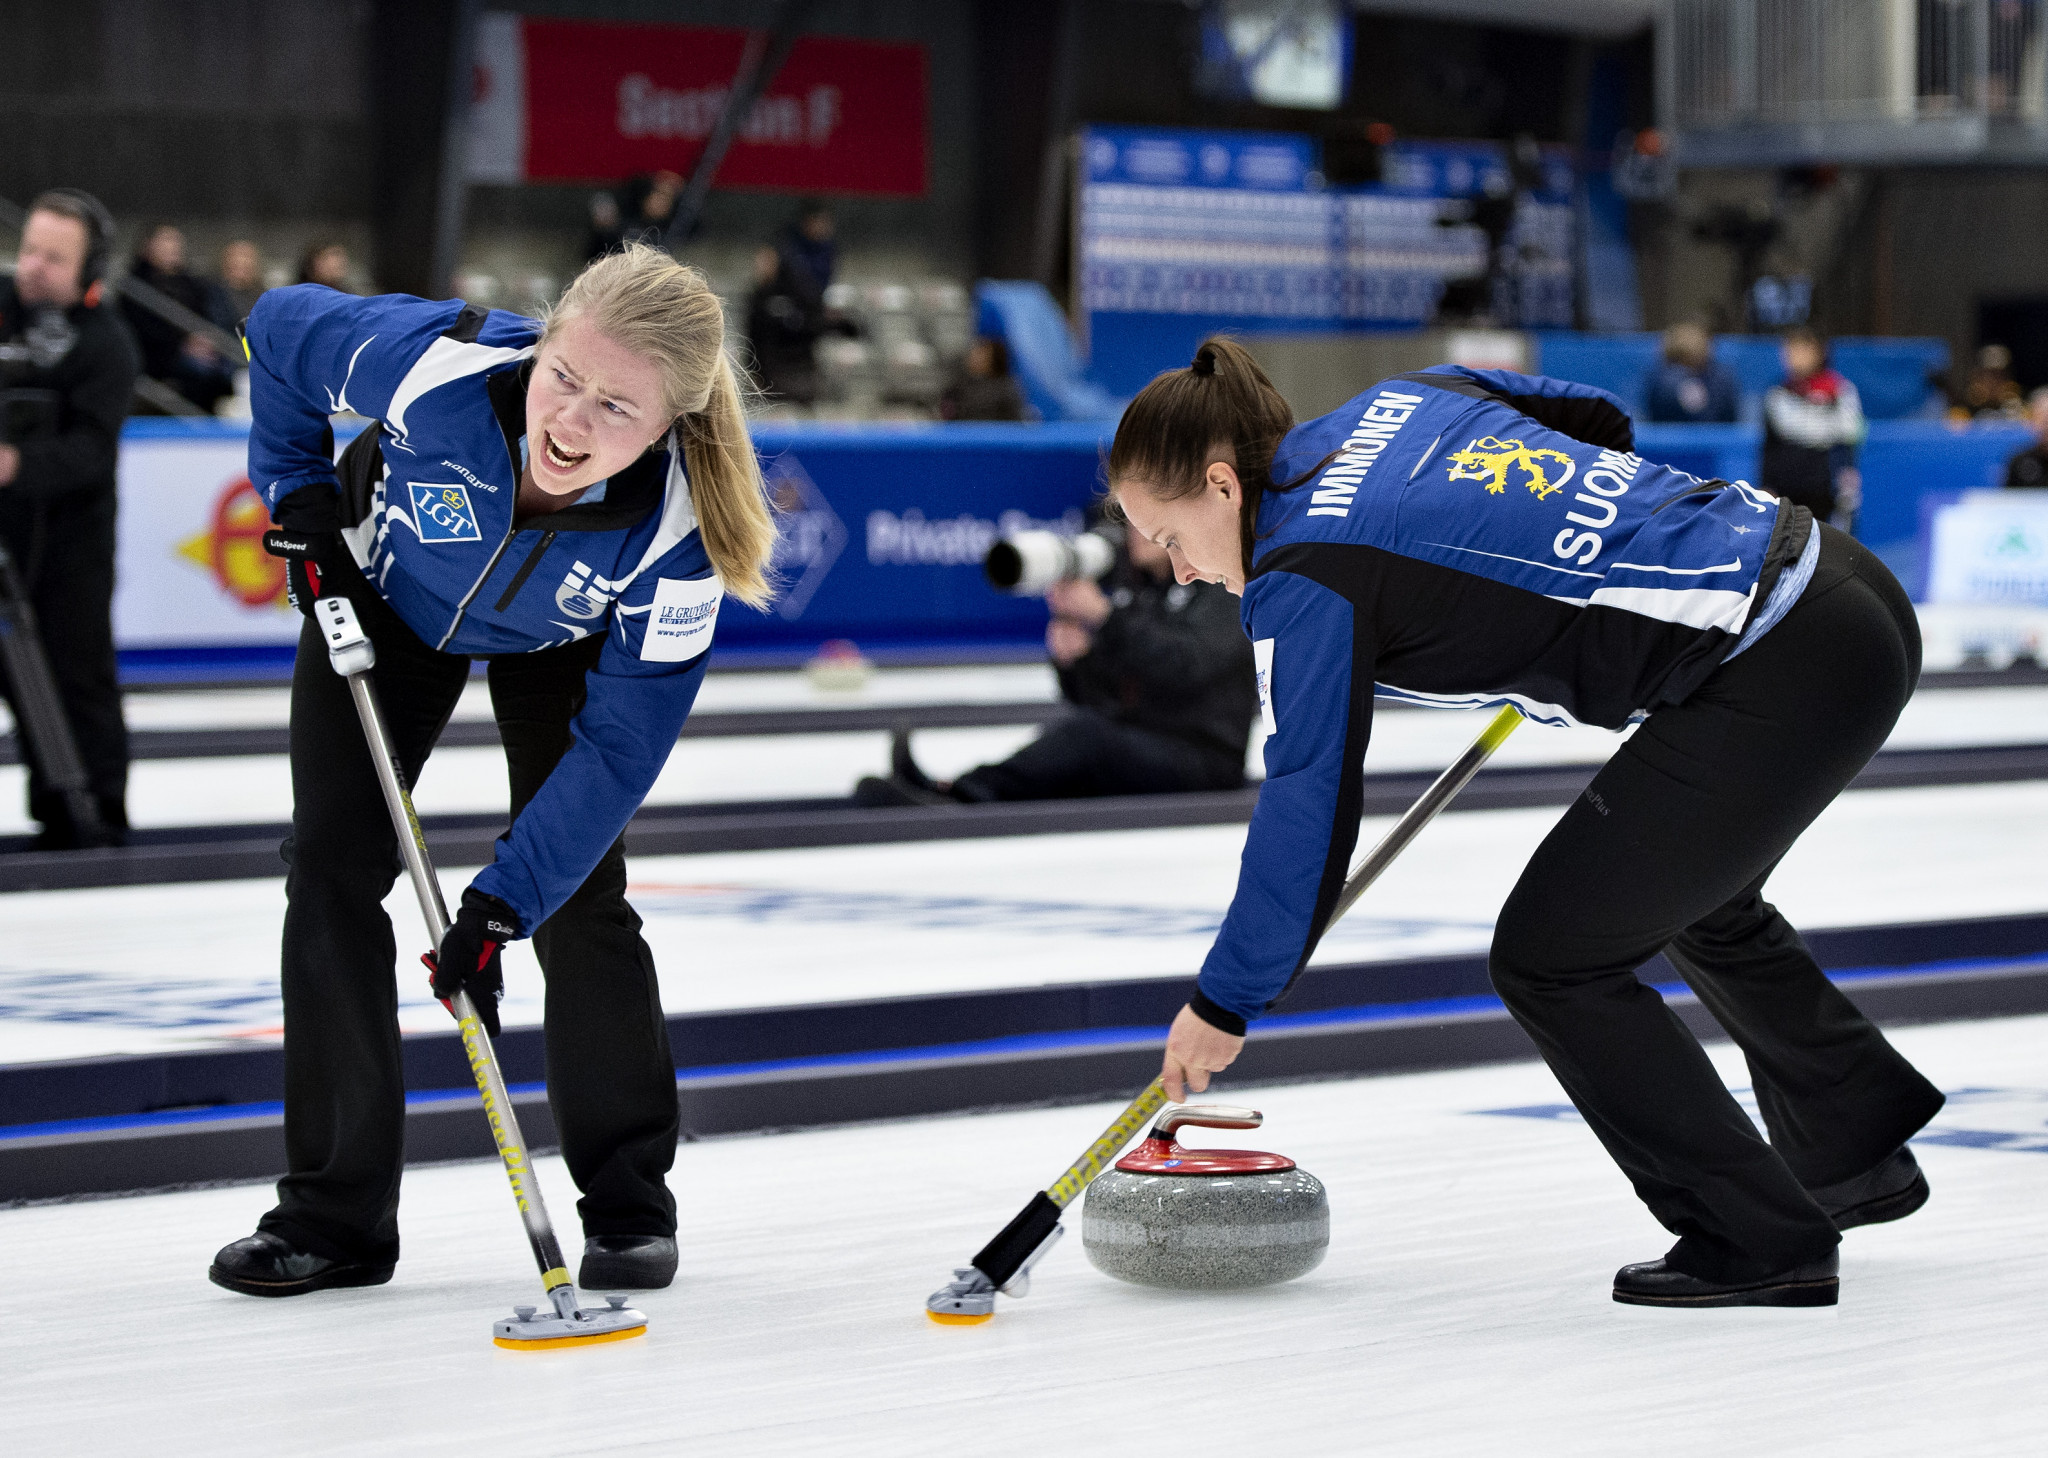 Hosts Finland are set to compete in both the men's and women's competition ©Getty Images